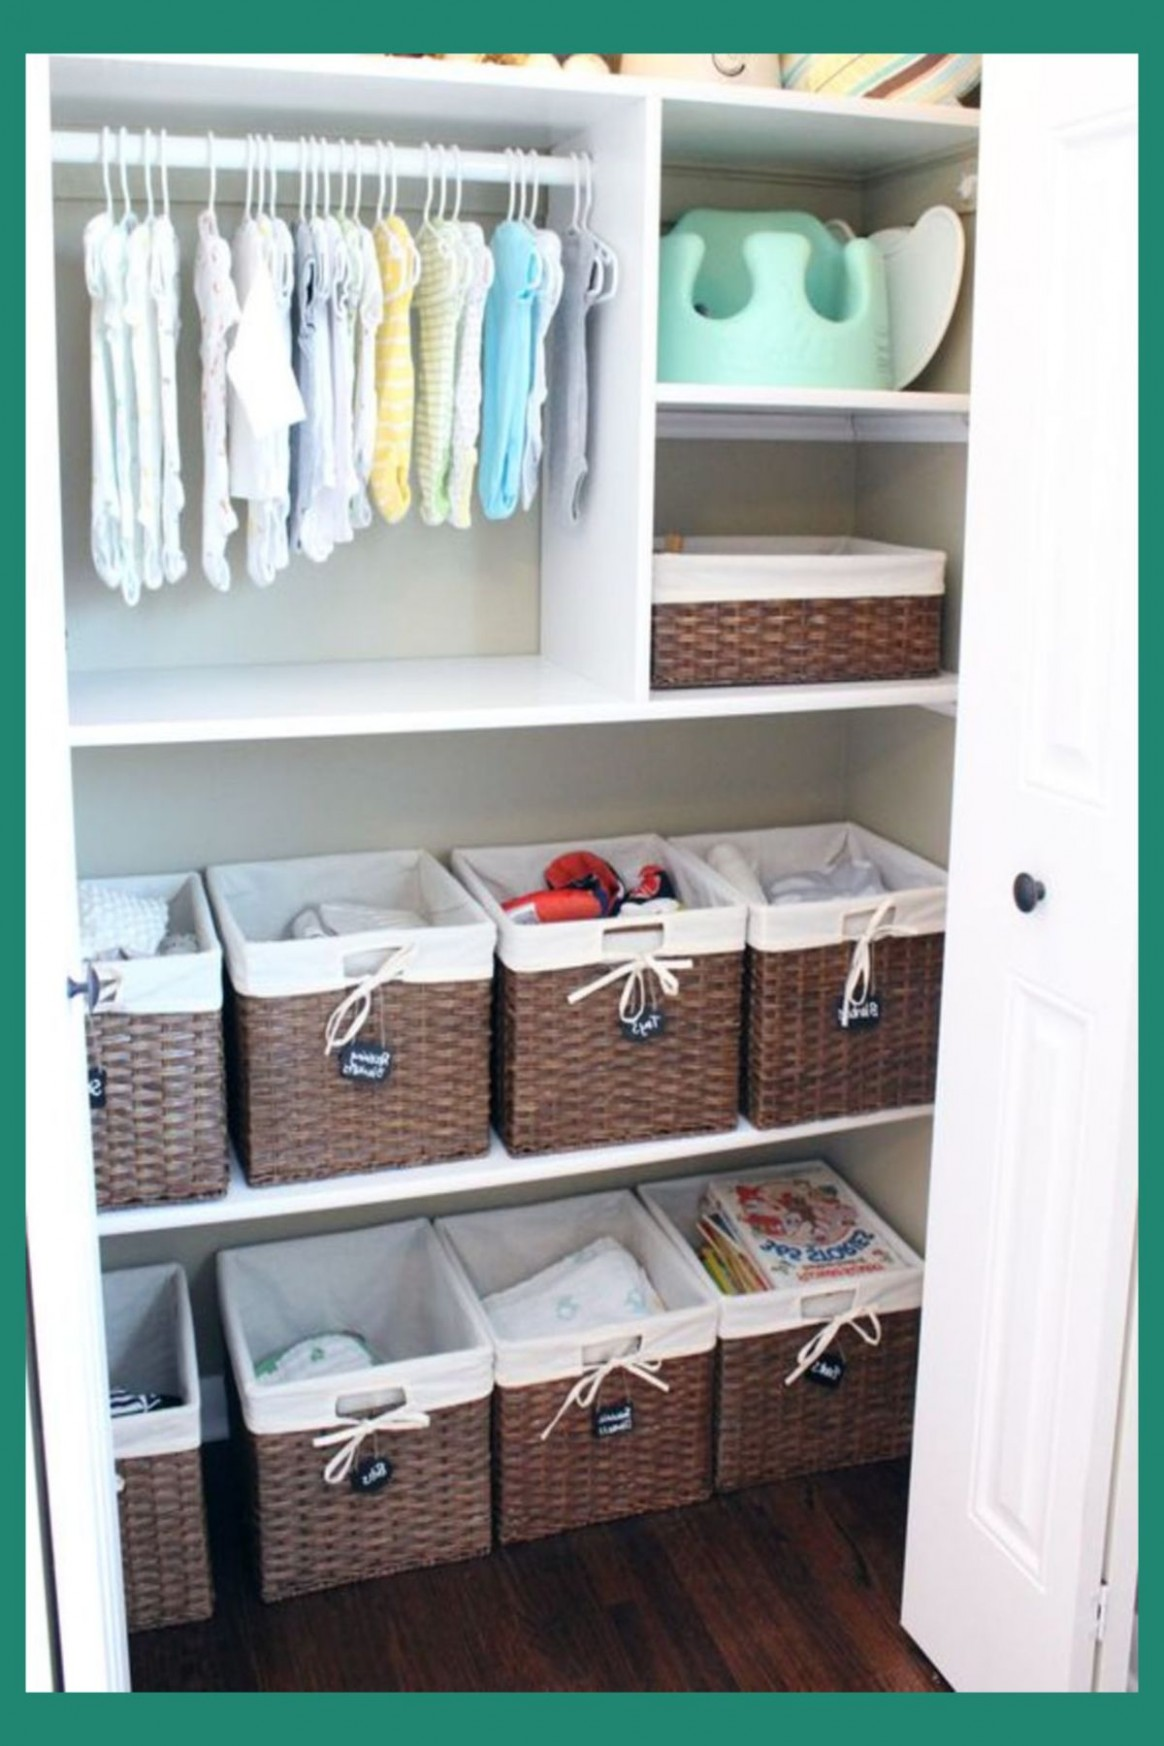 Baby Closet Ideas: 12 Nursery Closet Organization, Storage and  - Closet Ideas For Baby Nursery